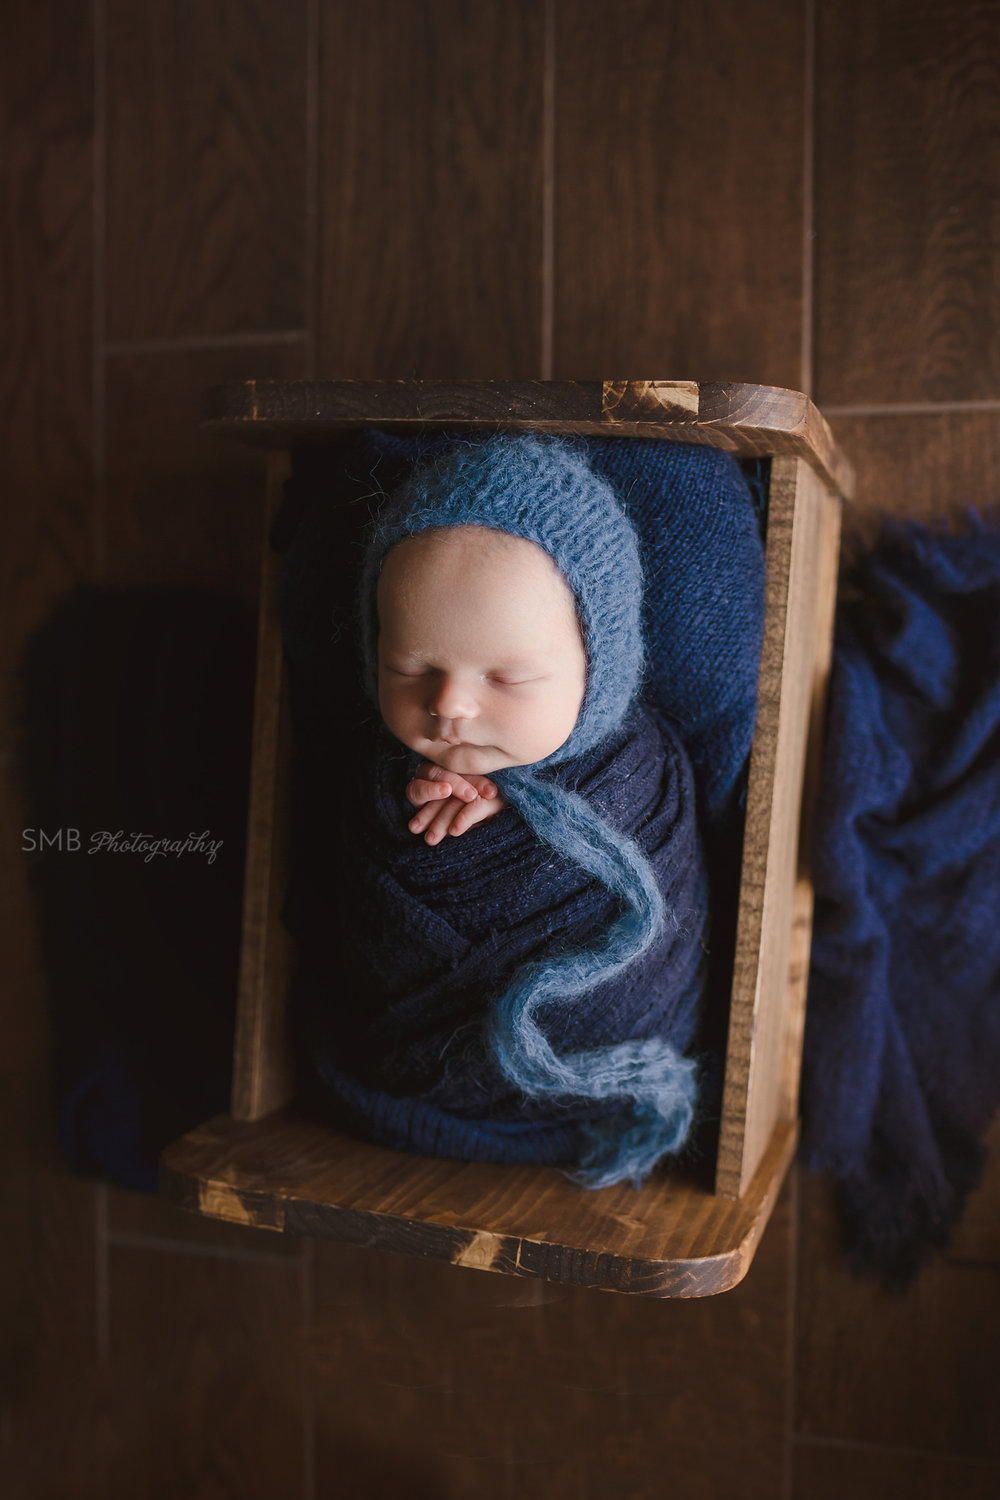 Baby boy in cradle wrapped in navy blue